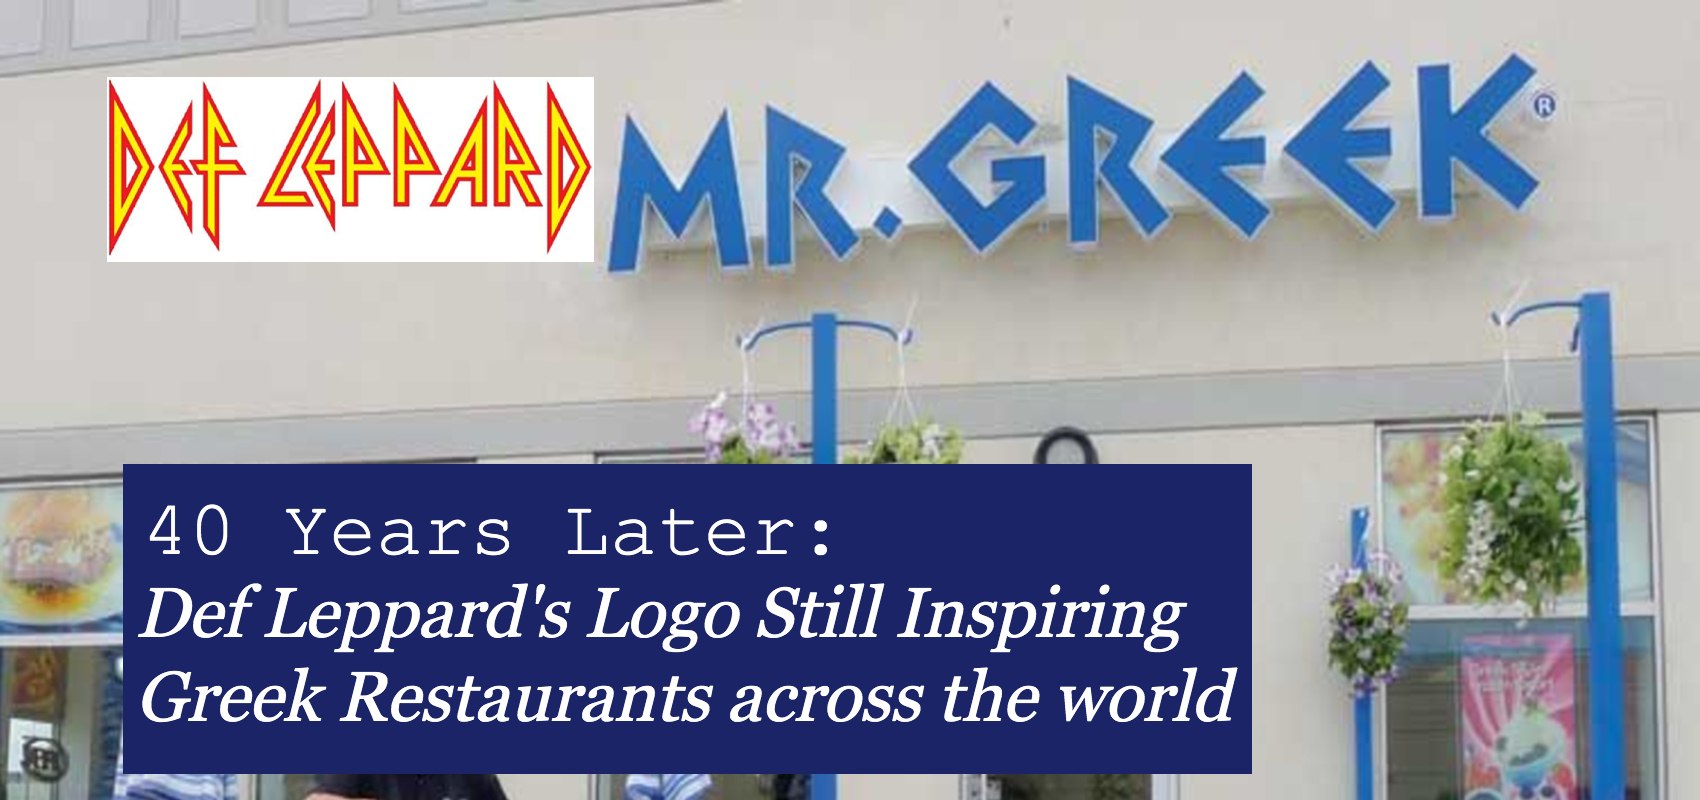 Def Leppard Logo next to Greek restaurant sign with similar shaped letters